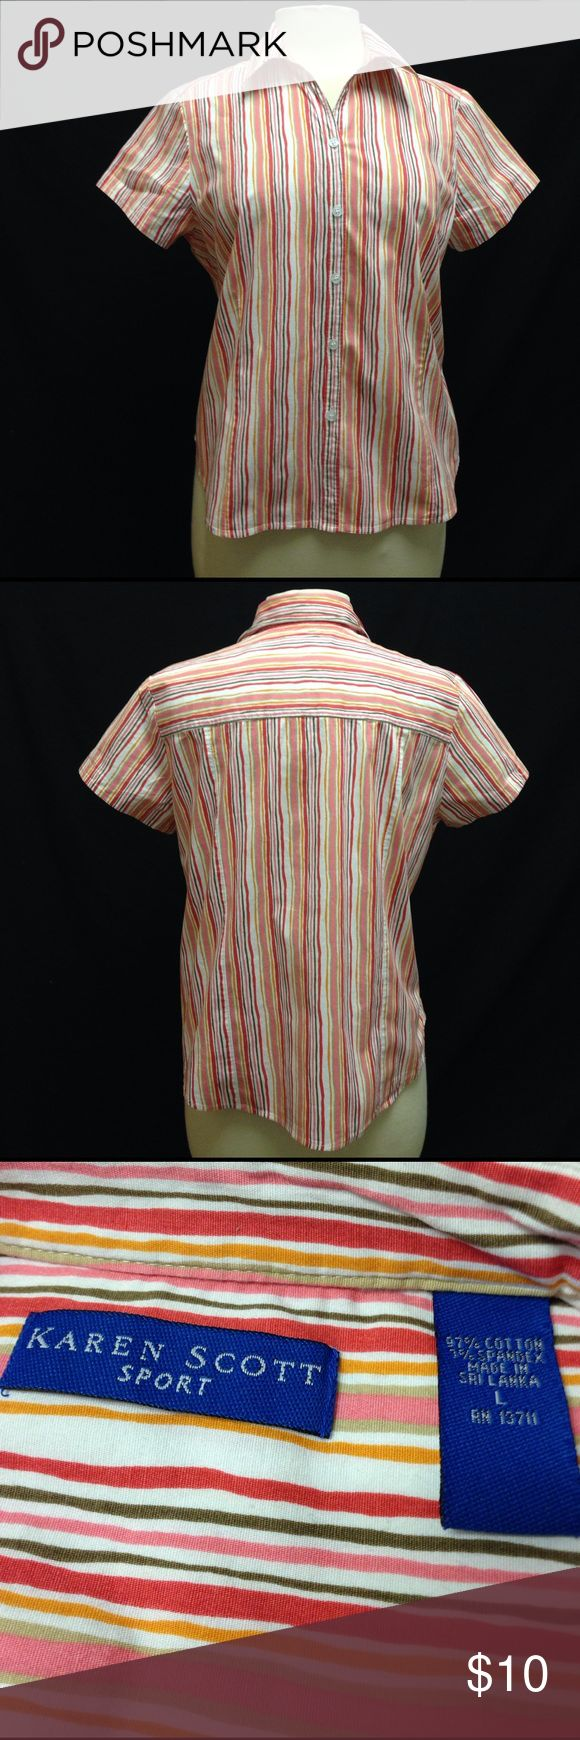 """Karen Scott Sport Striped Button Down Top Bust 43"""" Waist 41"""" Length 23"""" This top is excellent condition. Material stretches. No rips stains or tears. Karen Scott Tops Button Down Shirts"""